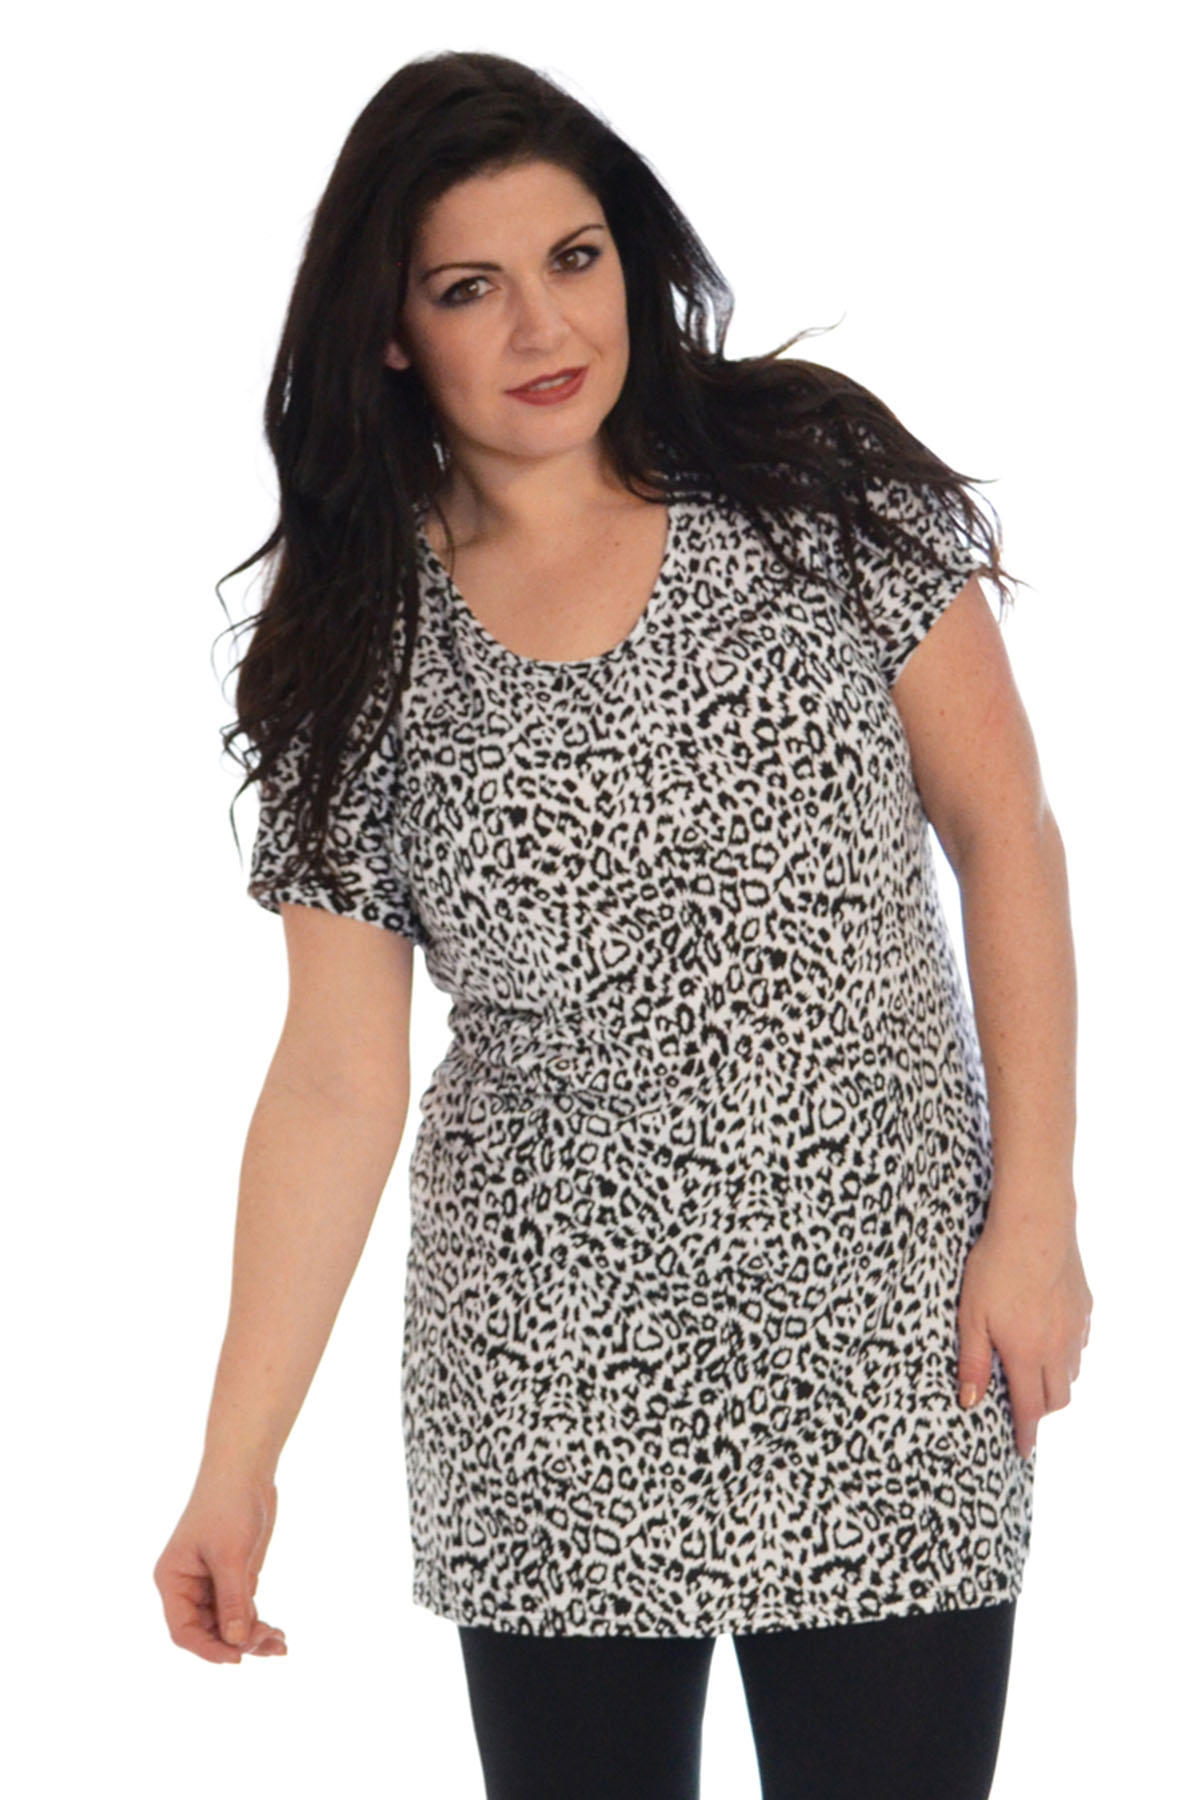 Find high quality printed Leopard Textile Women's Tank Tops at CafePress. Unique designs created by designers all over the world.?Free Returns?% Satisfaction Guarantee?Fast Shipping.